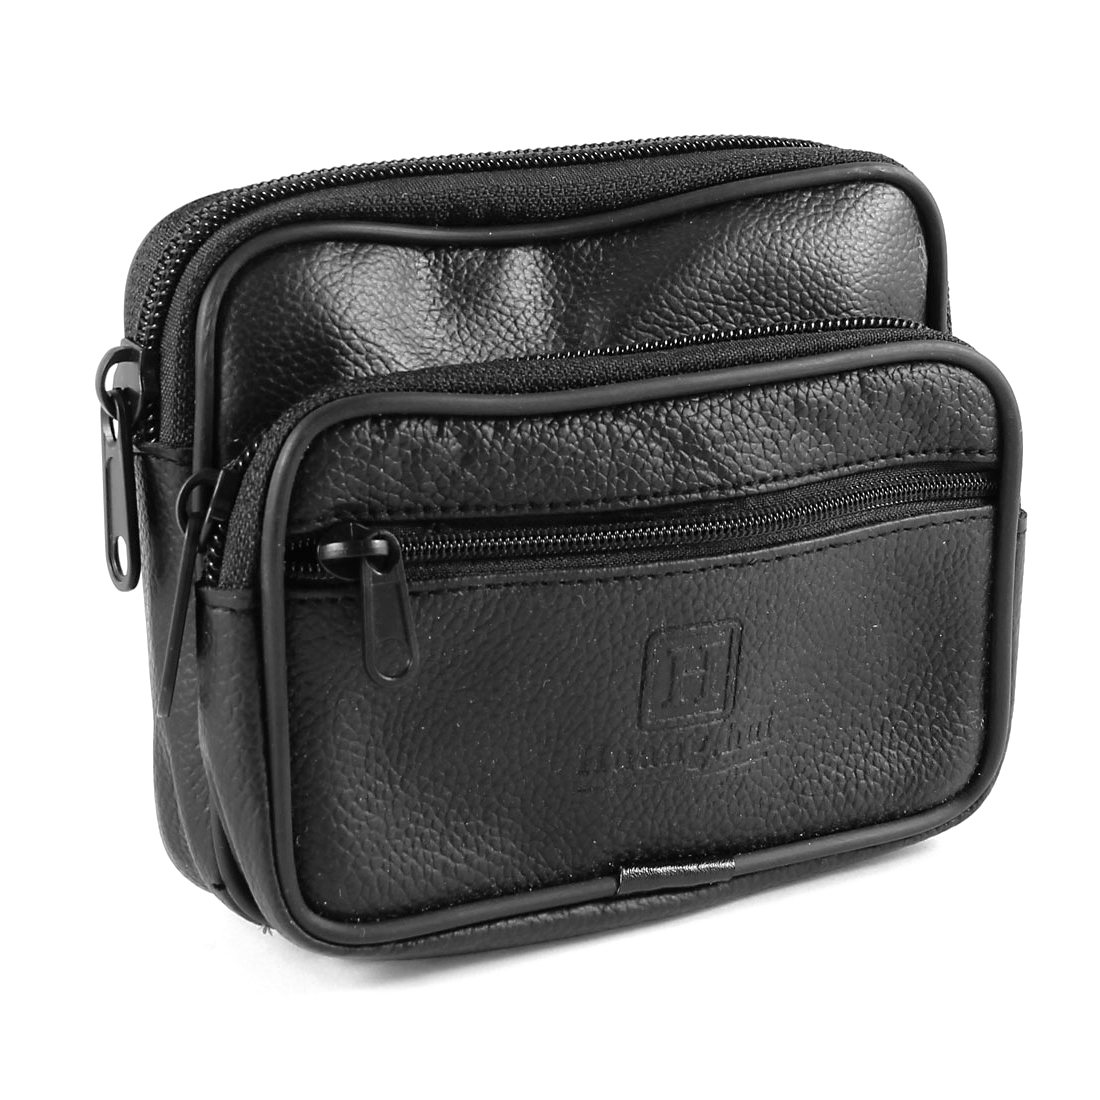 Men Black 3 Compartments Zippered Faux Leather Waist Pack Bag